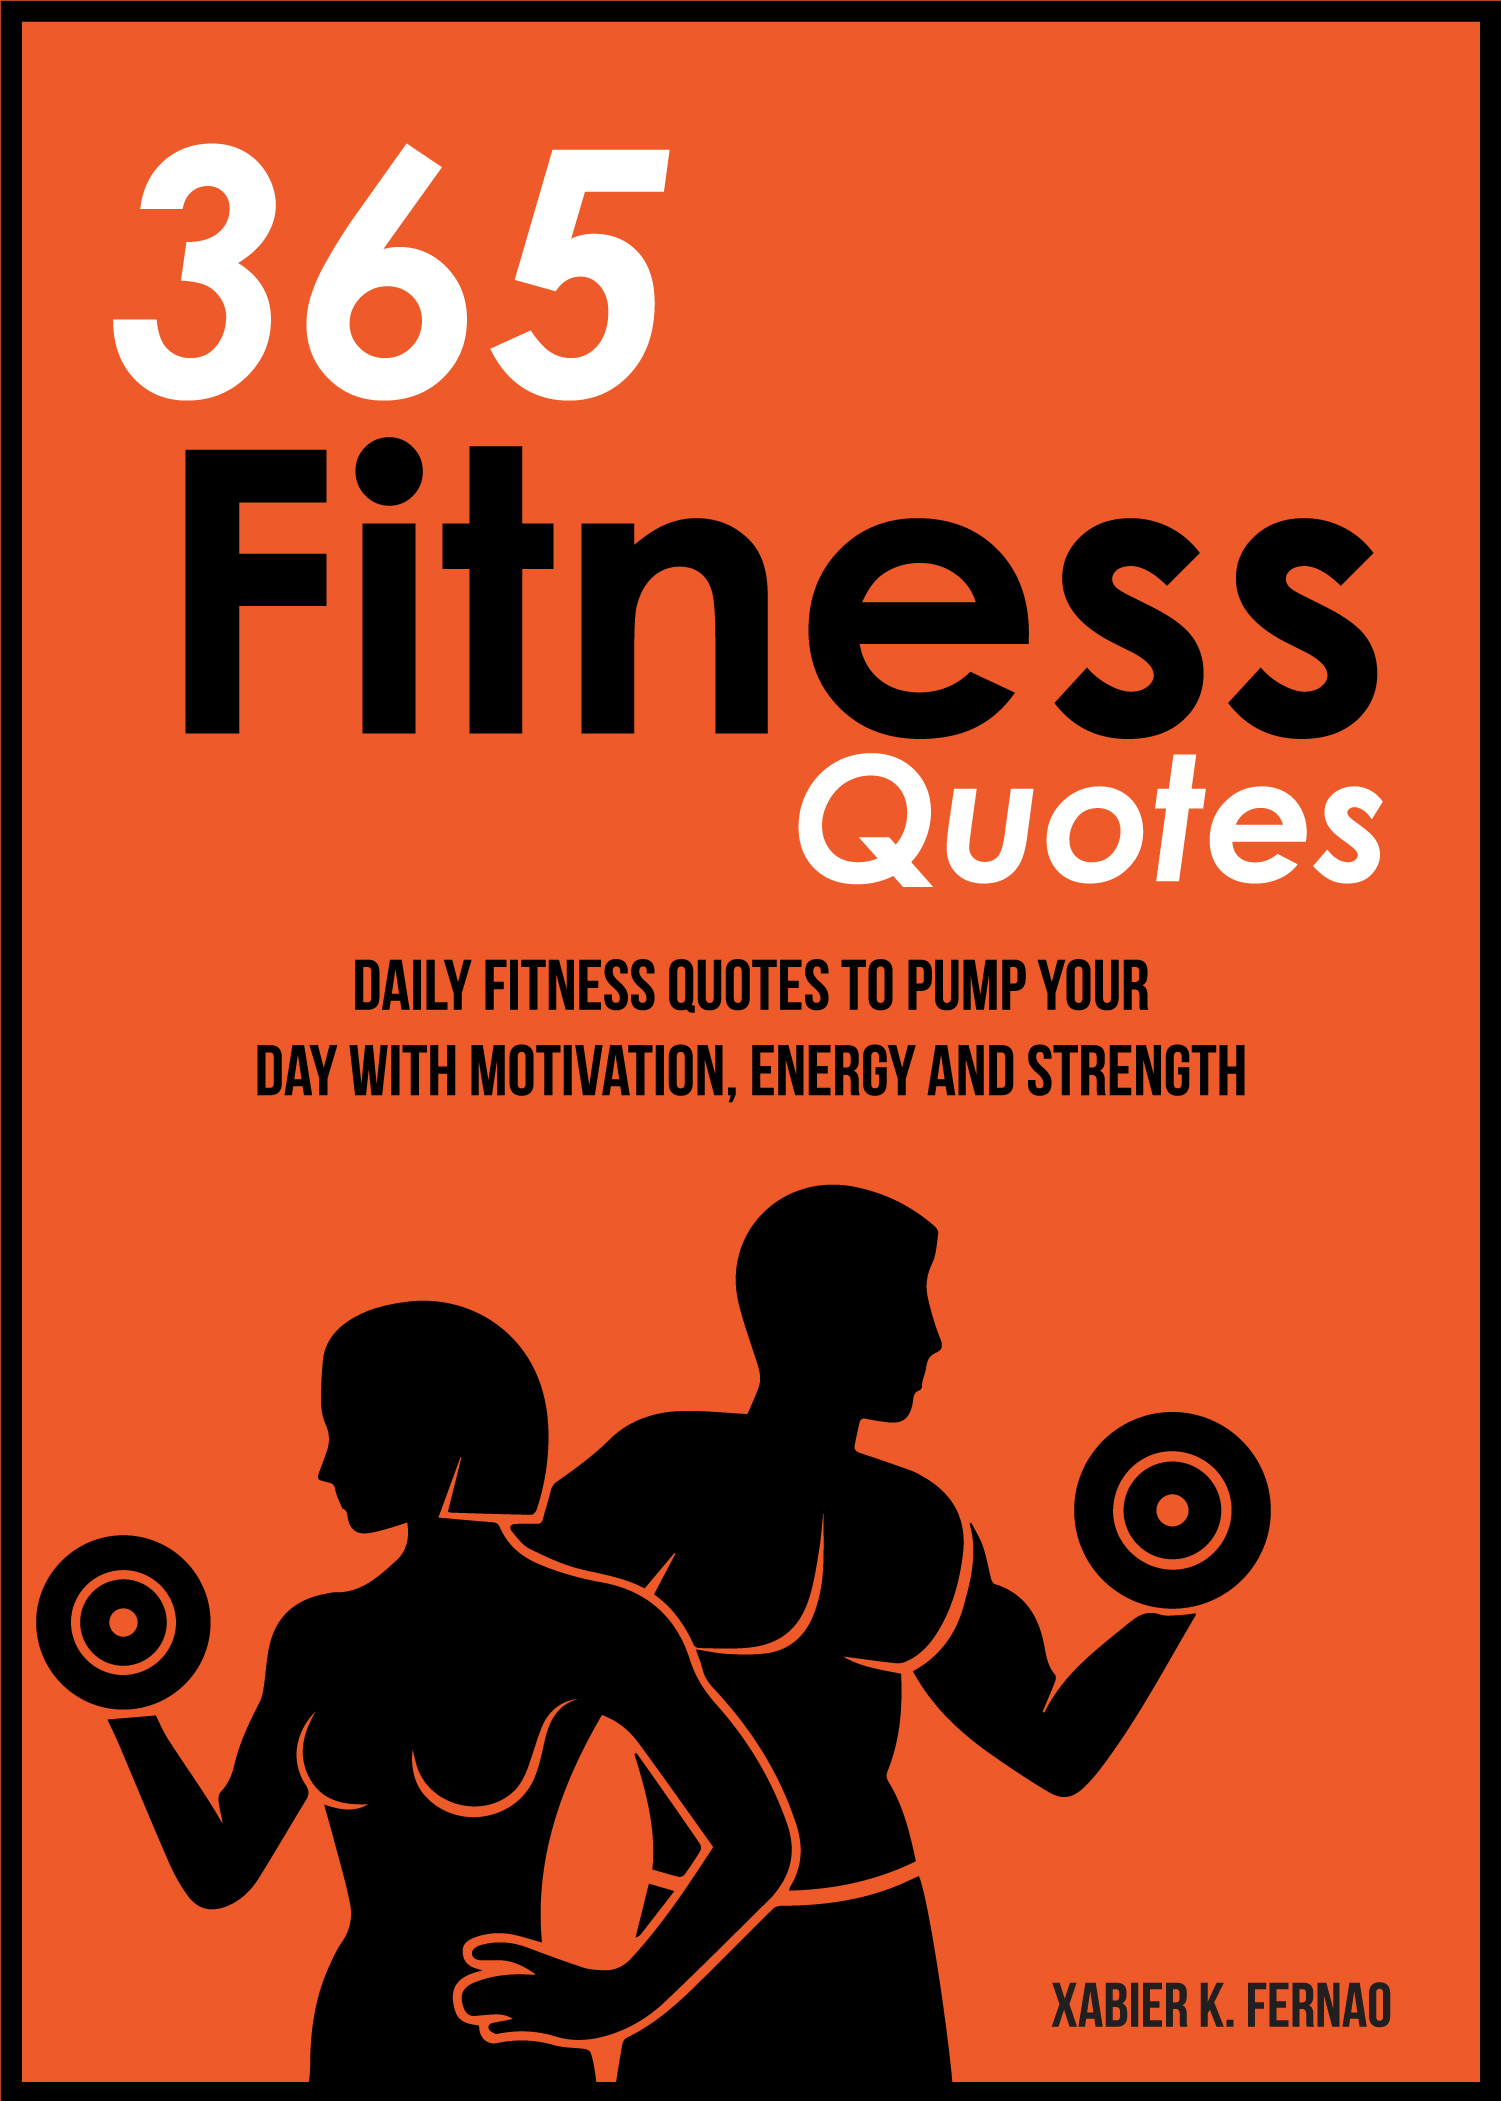 365 fitness quotes